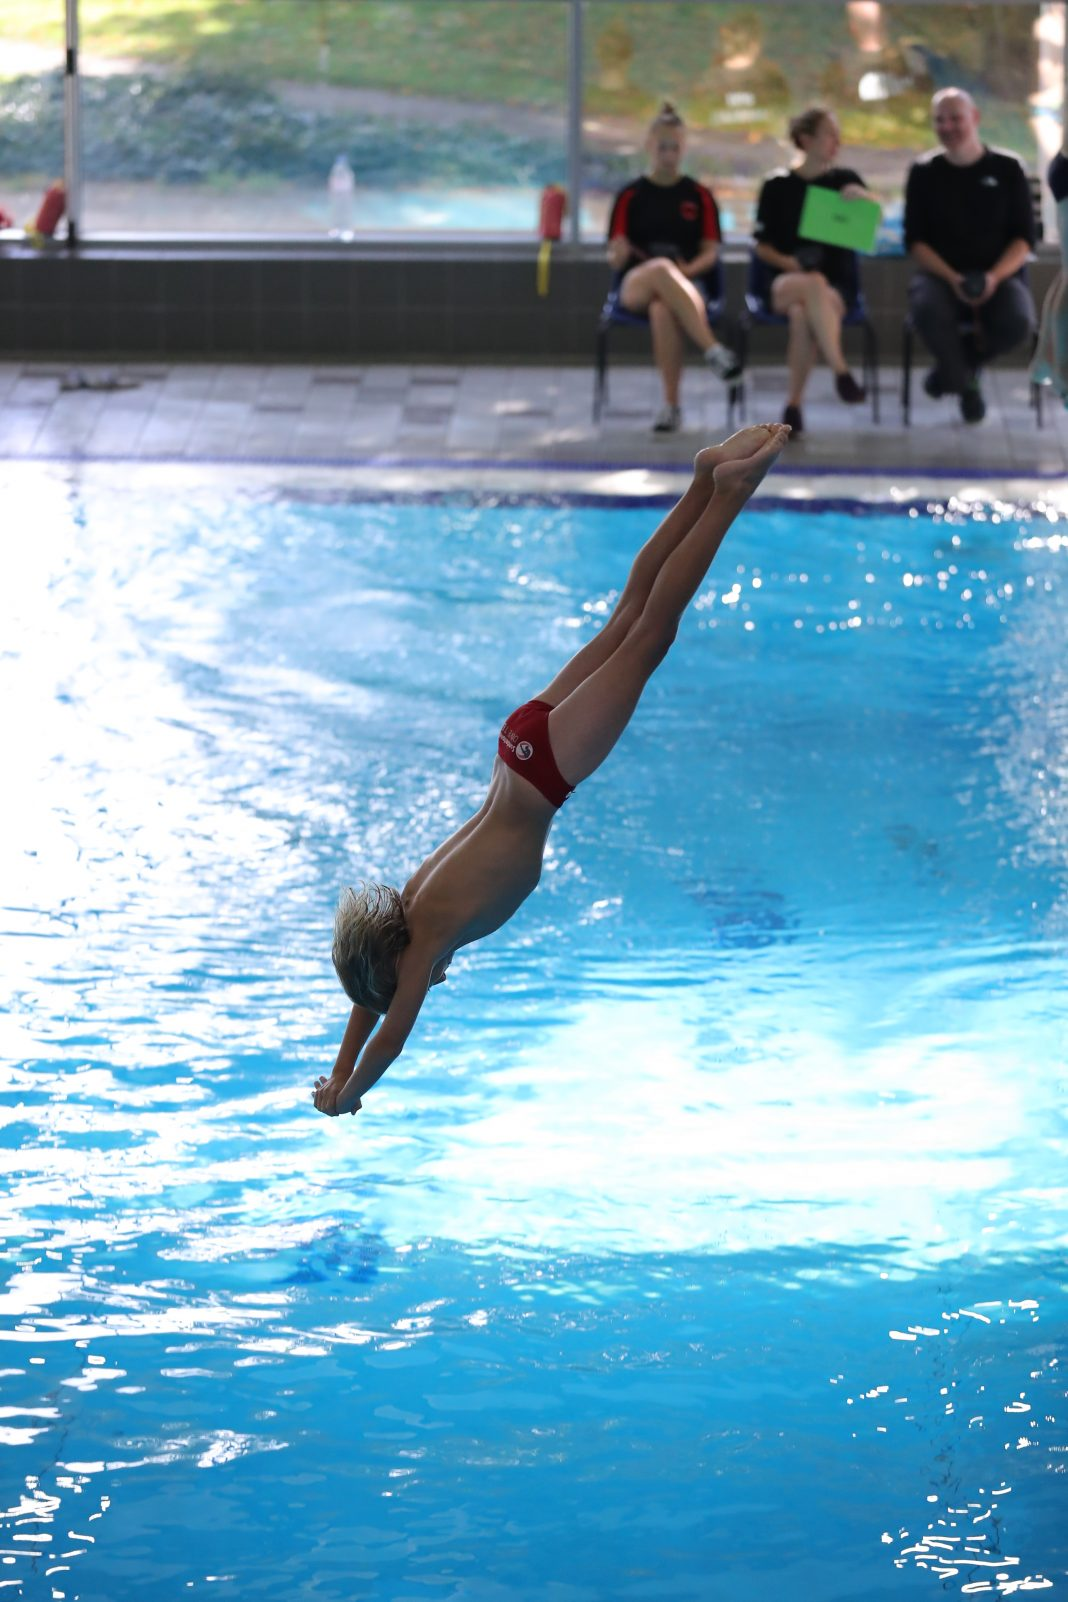 North East Divers Campaign To Keep Pools Open Amid New Covid-19 Restrictions